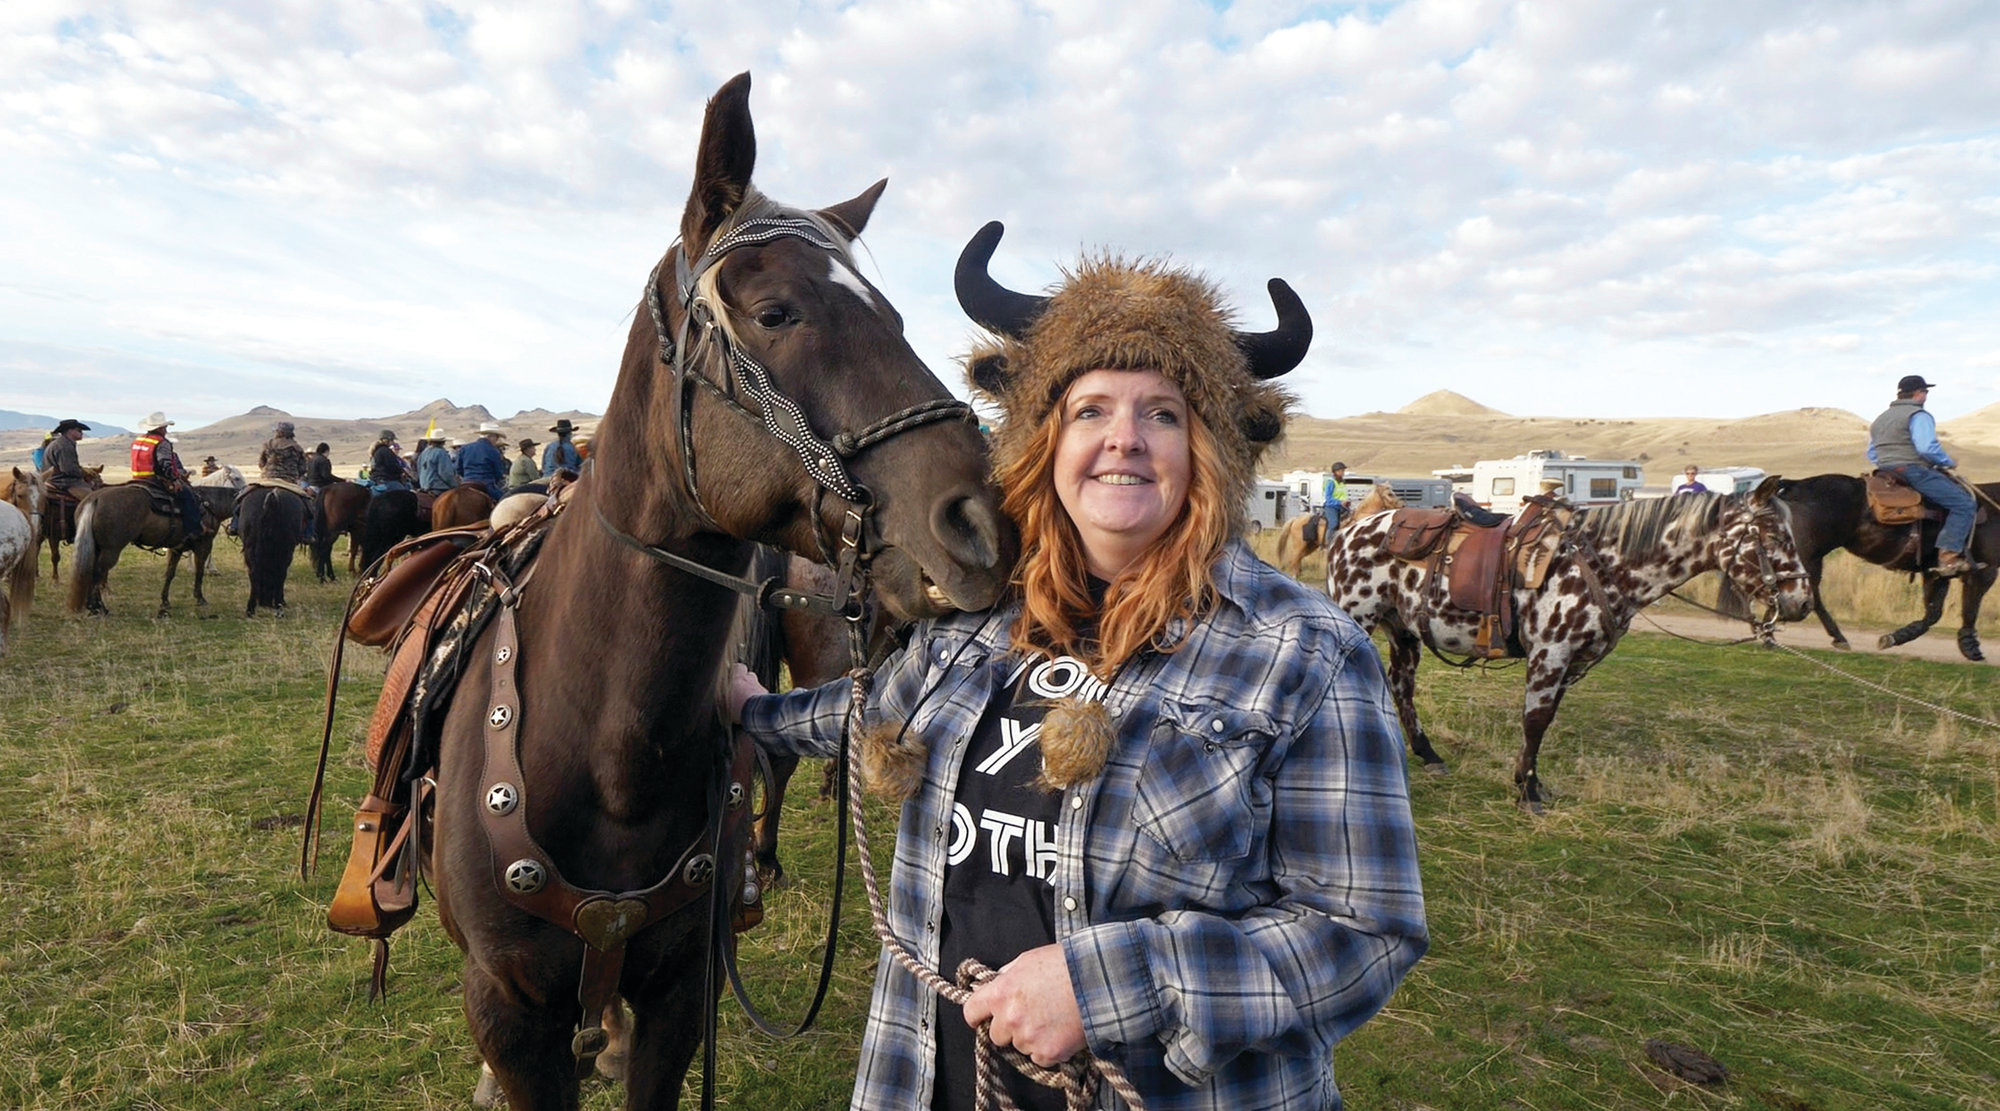 Rider Kyann Betz took part in this year's annual roundup which caps riders at 250 per year.